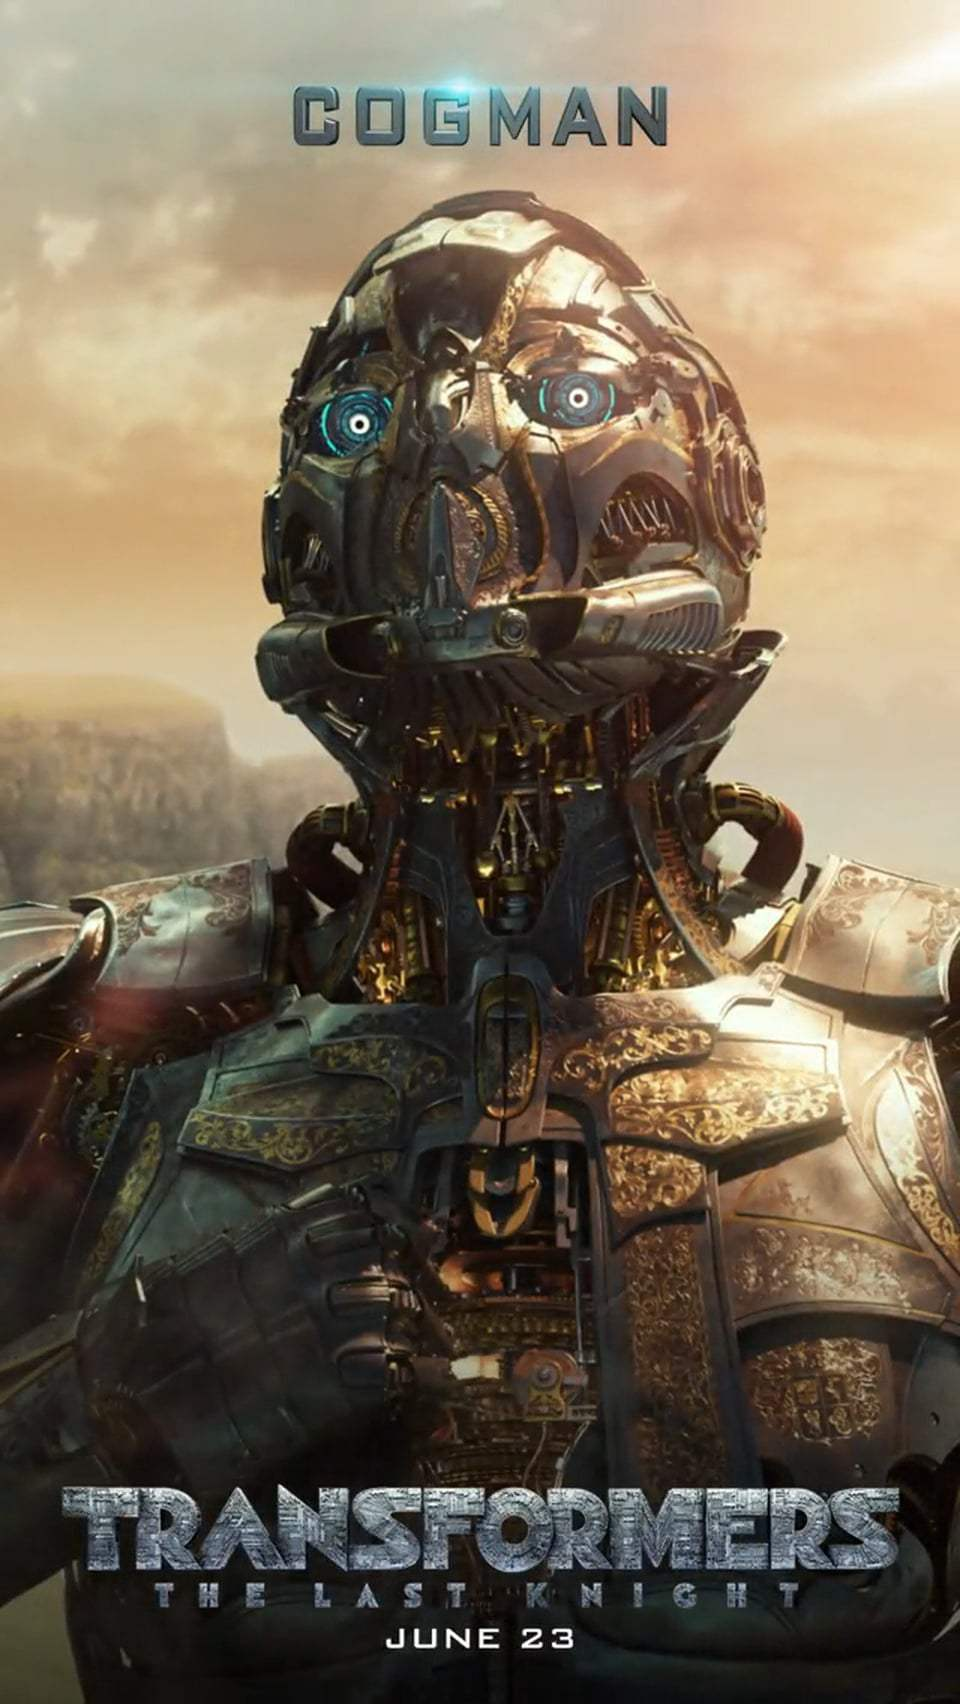 Transformers: The Last Knight Motion Poster - Cogman (2017) Screen Capture